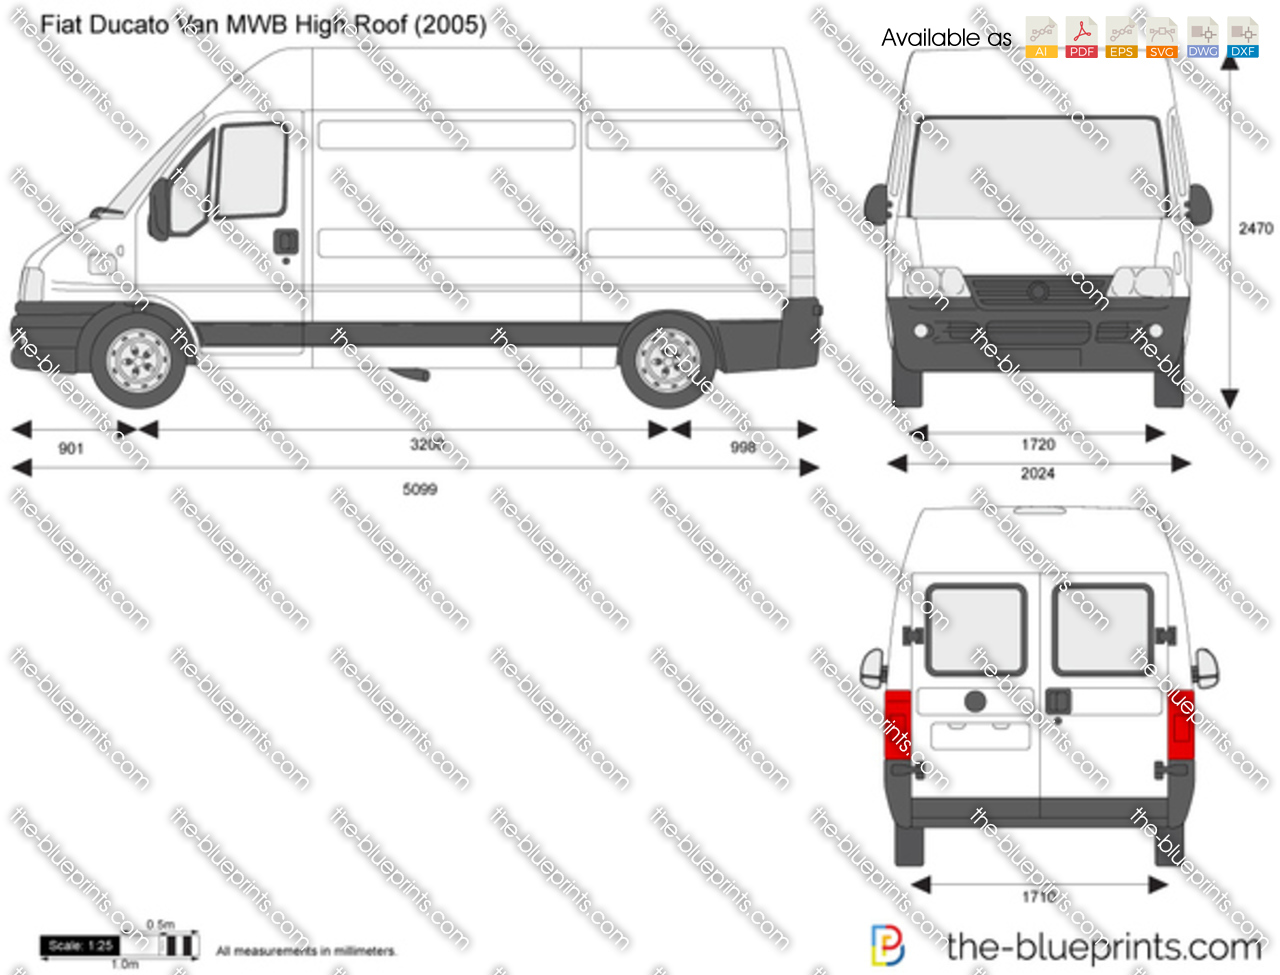 fiat ducato van mwb high roof vector drawing. Black Bedroom Furniture Sets. Home Design Ideas